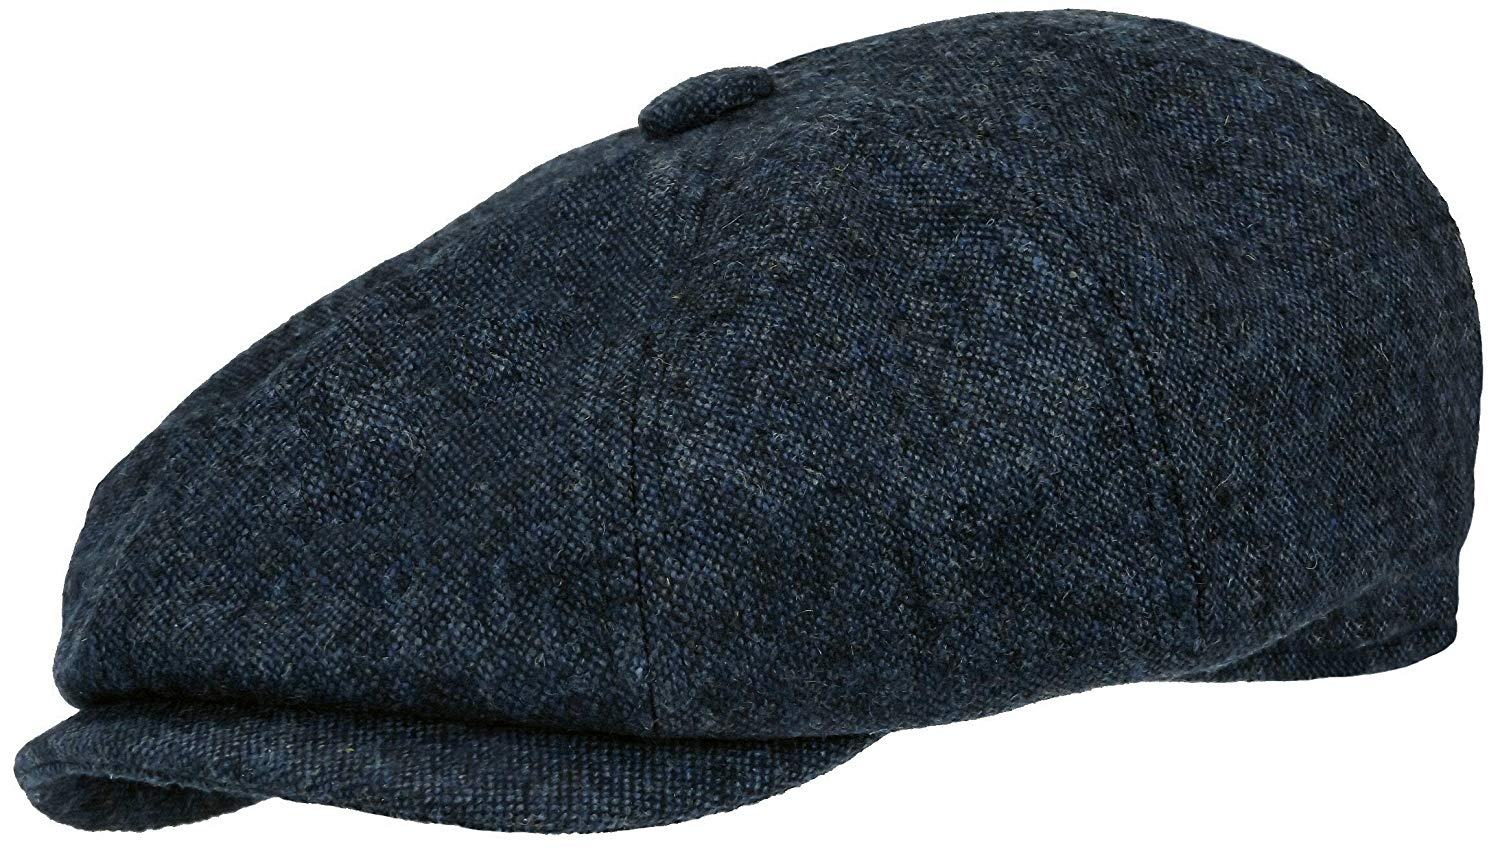 6c388bfbf15 Get Quotations · Rooster Cobalt Wool Tweed Newsboy Gatsby Cap Ivy Golf Hat  Driving Cabbie Gray